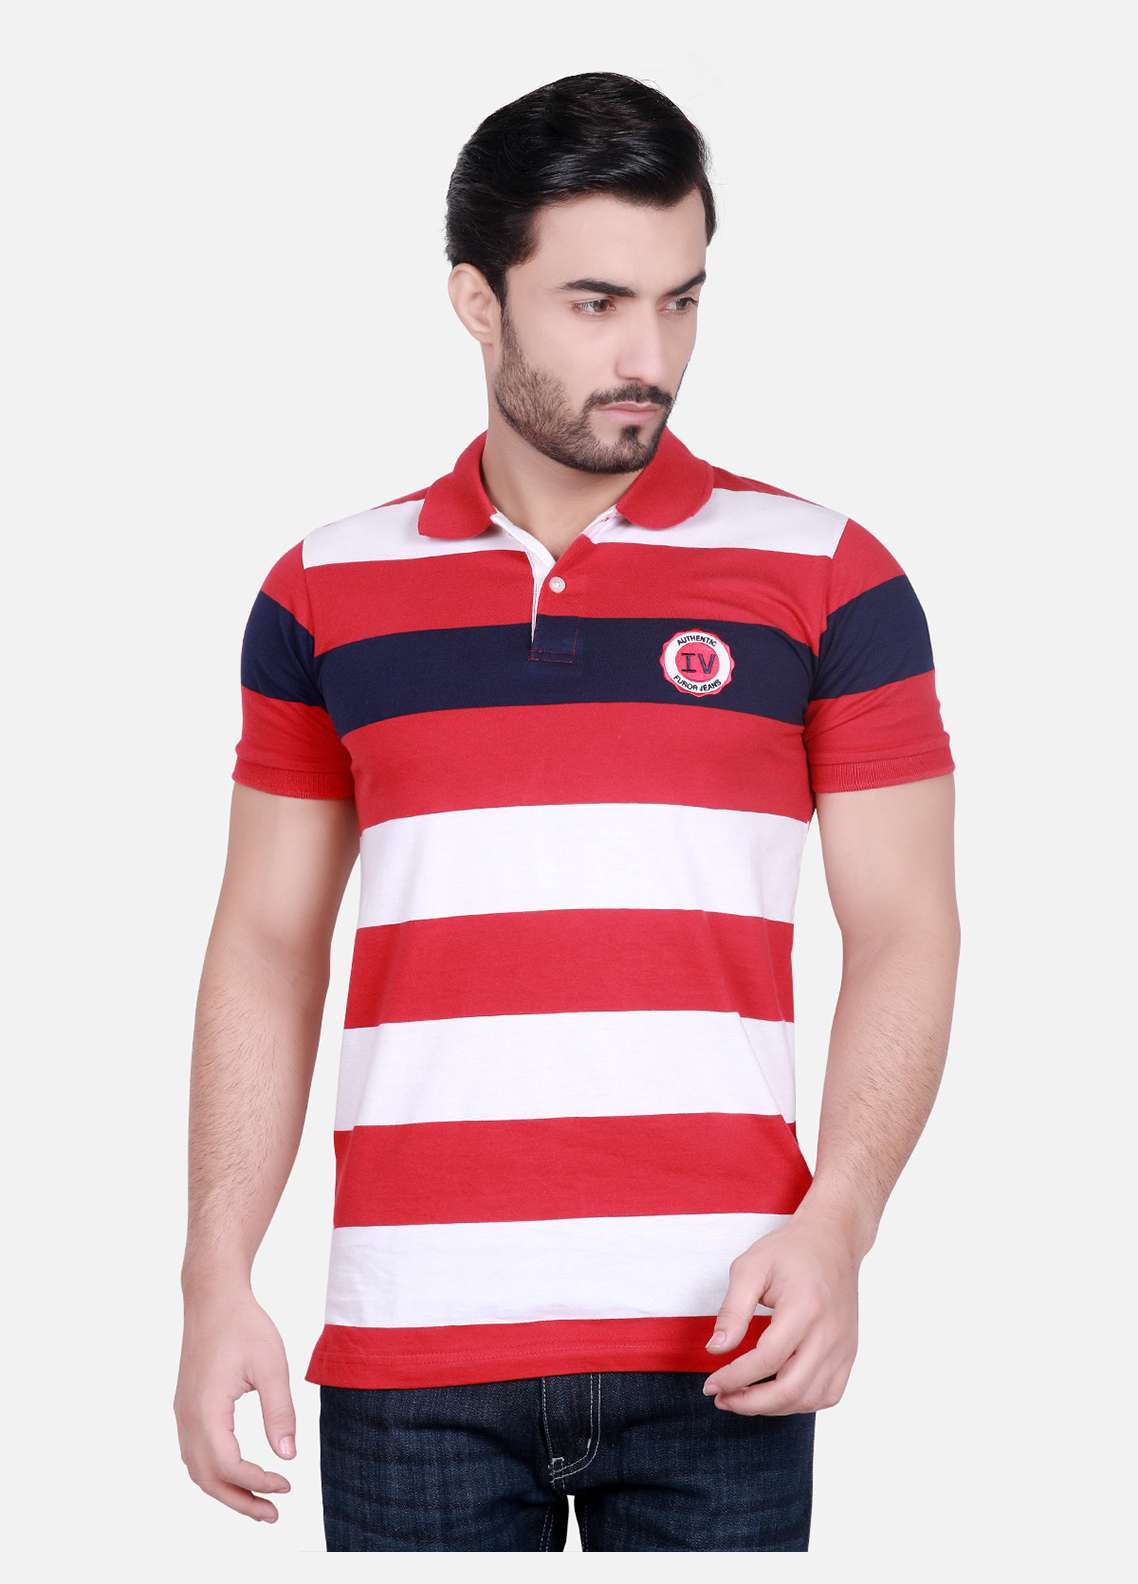 Furor Cotton Polo T-Shirts for Men - Red FRM18PS 011